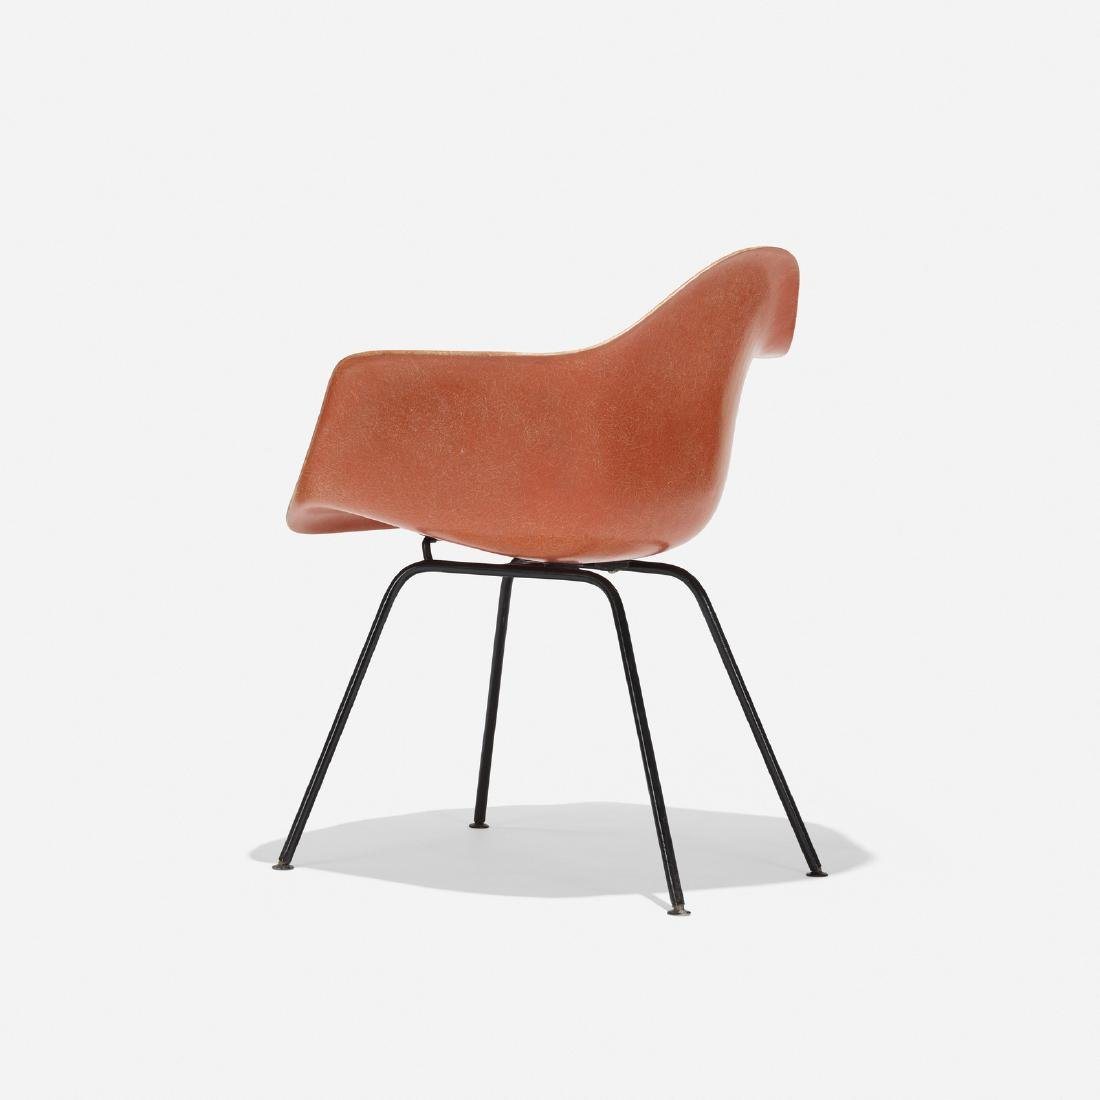 Charles and Ray Eames, DAX - 3